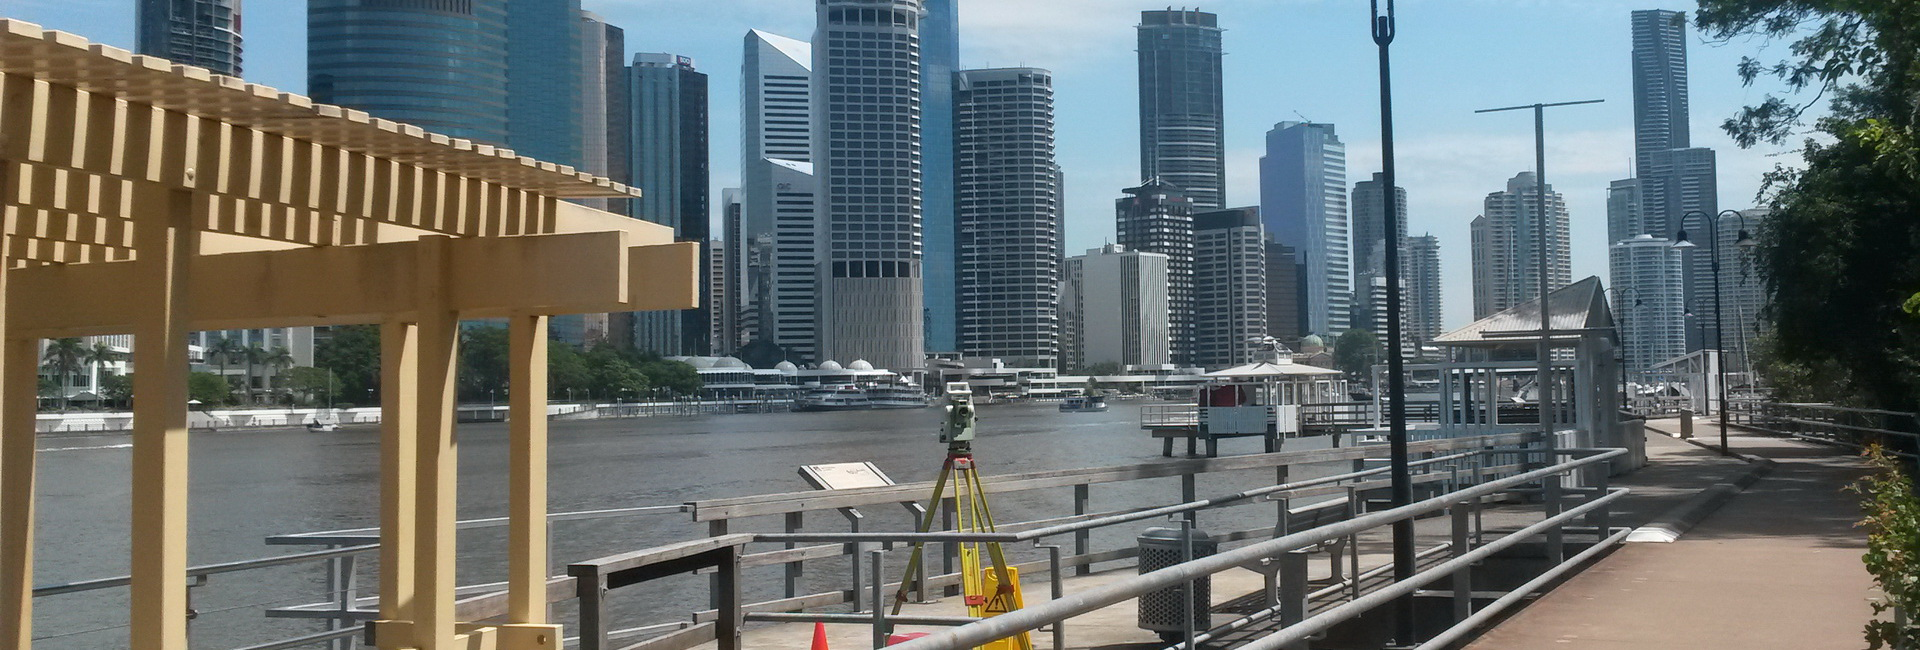 JFP Surveyors display proud involvement in ongoing Brisbane projects